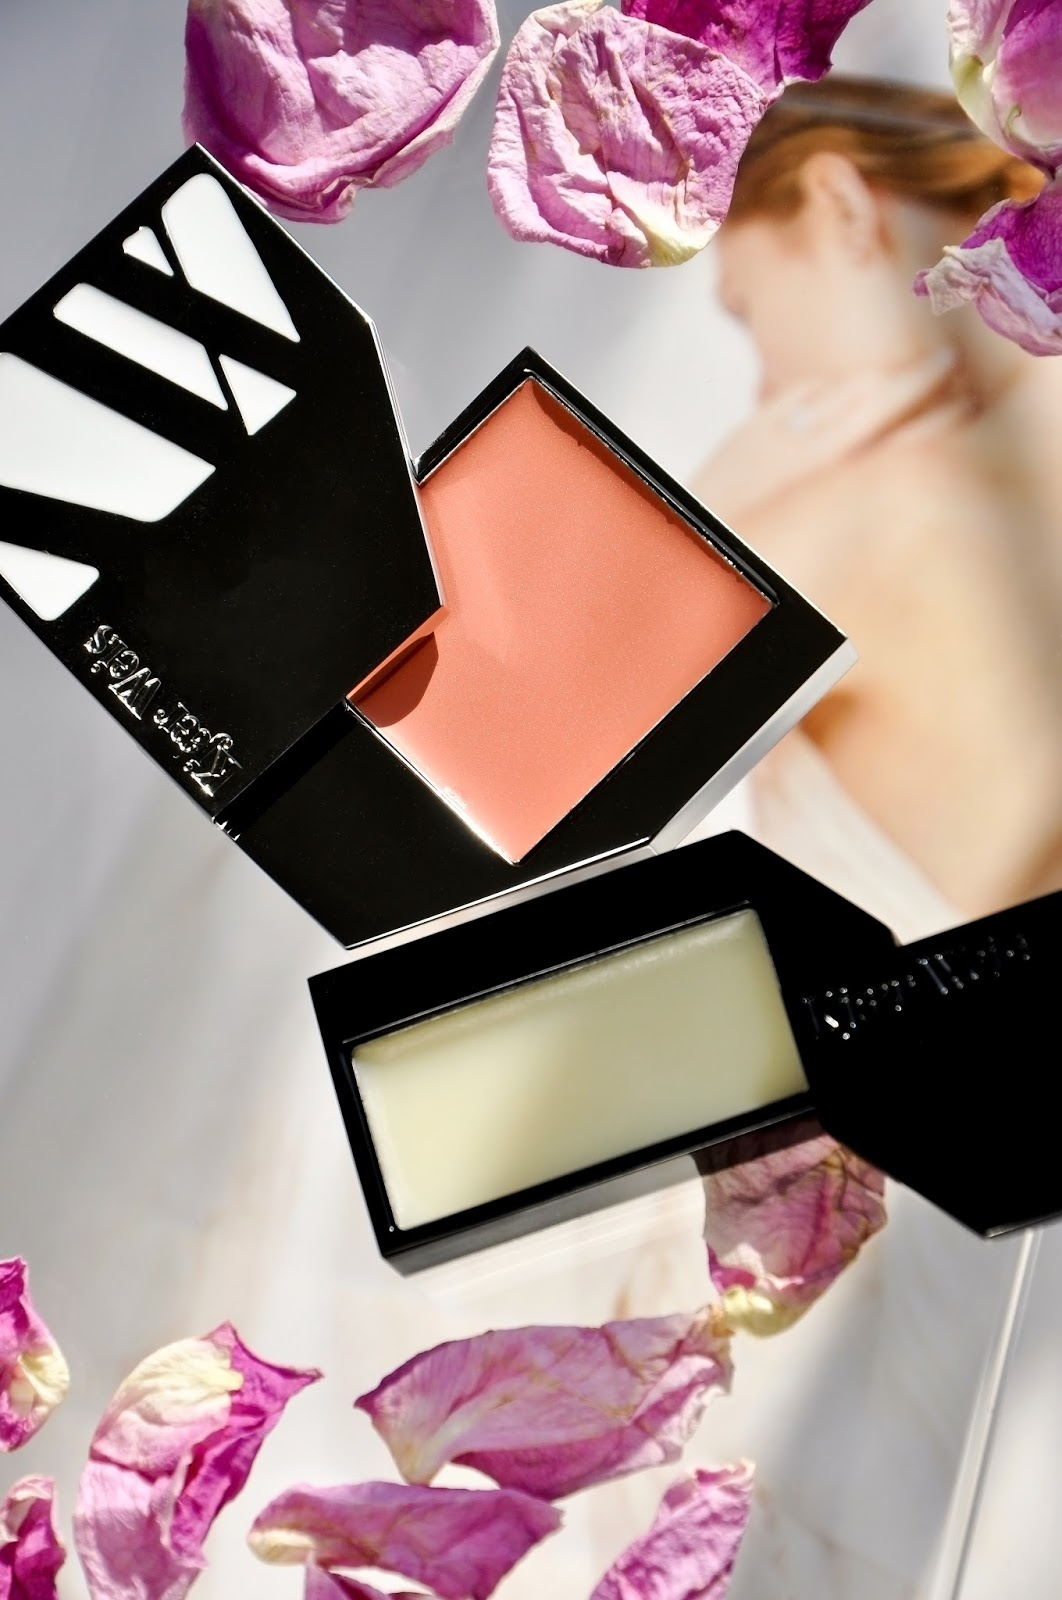 Tried & Tested: Kjaer Weis Cream Blush in Sun Touched & The Lip Balm